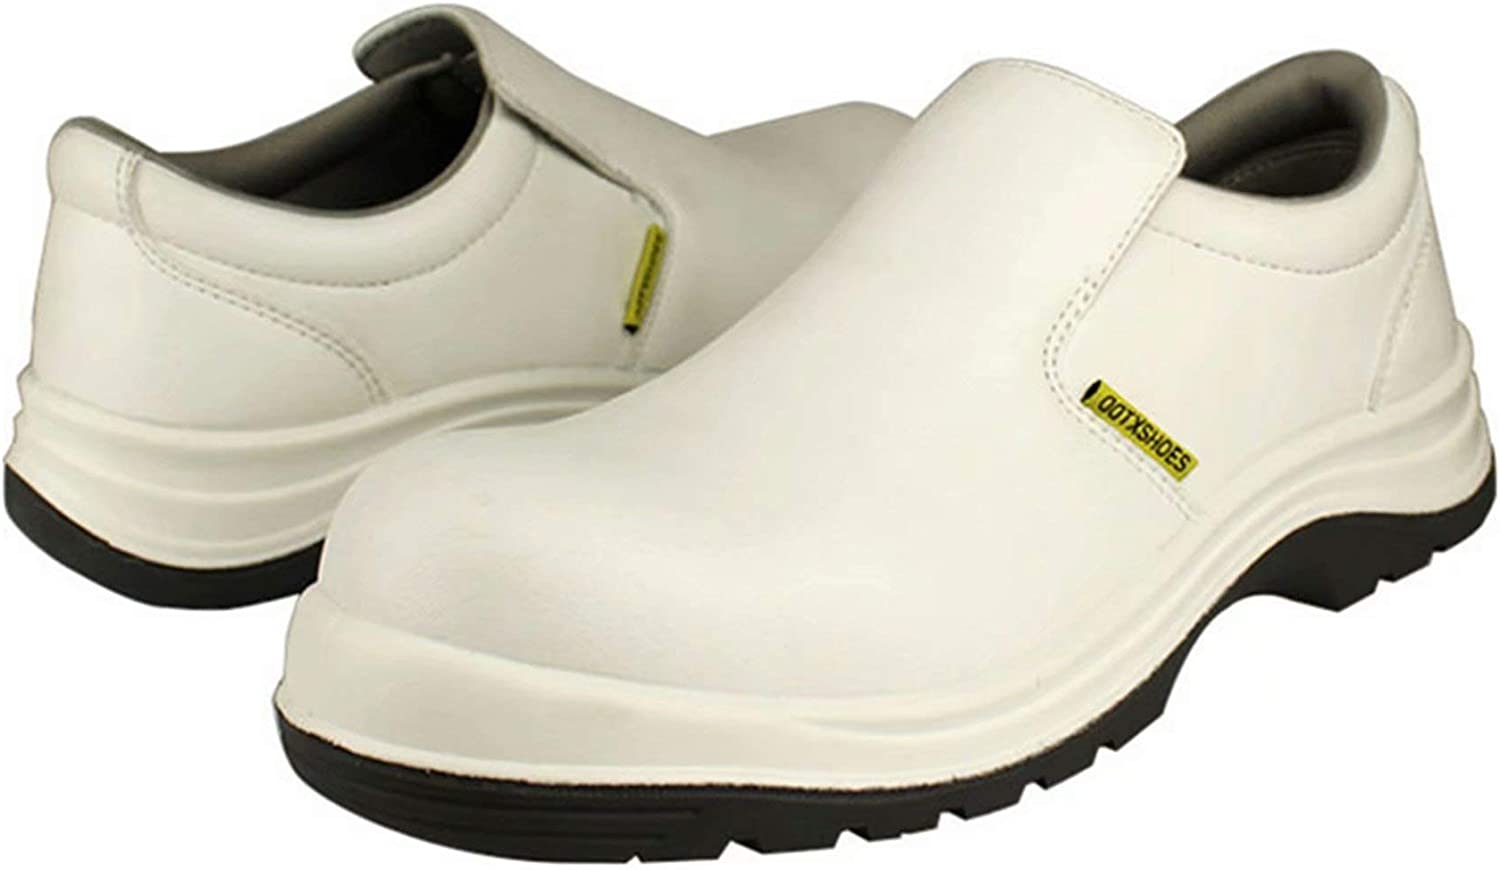 DDTX Safety Work shoes Unisex Composite Toe SRC Anti-slip Anti-static On Kitchen for Chef S2 White 12UK